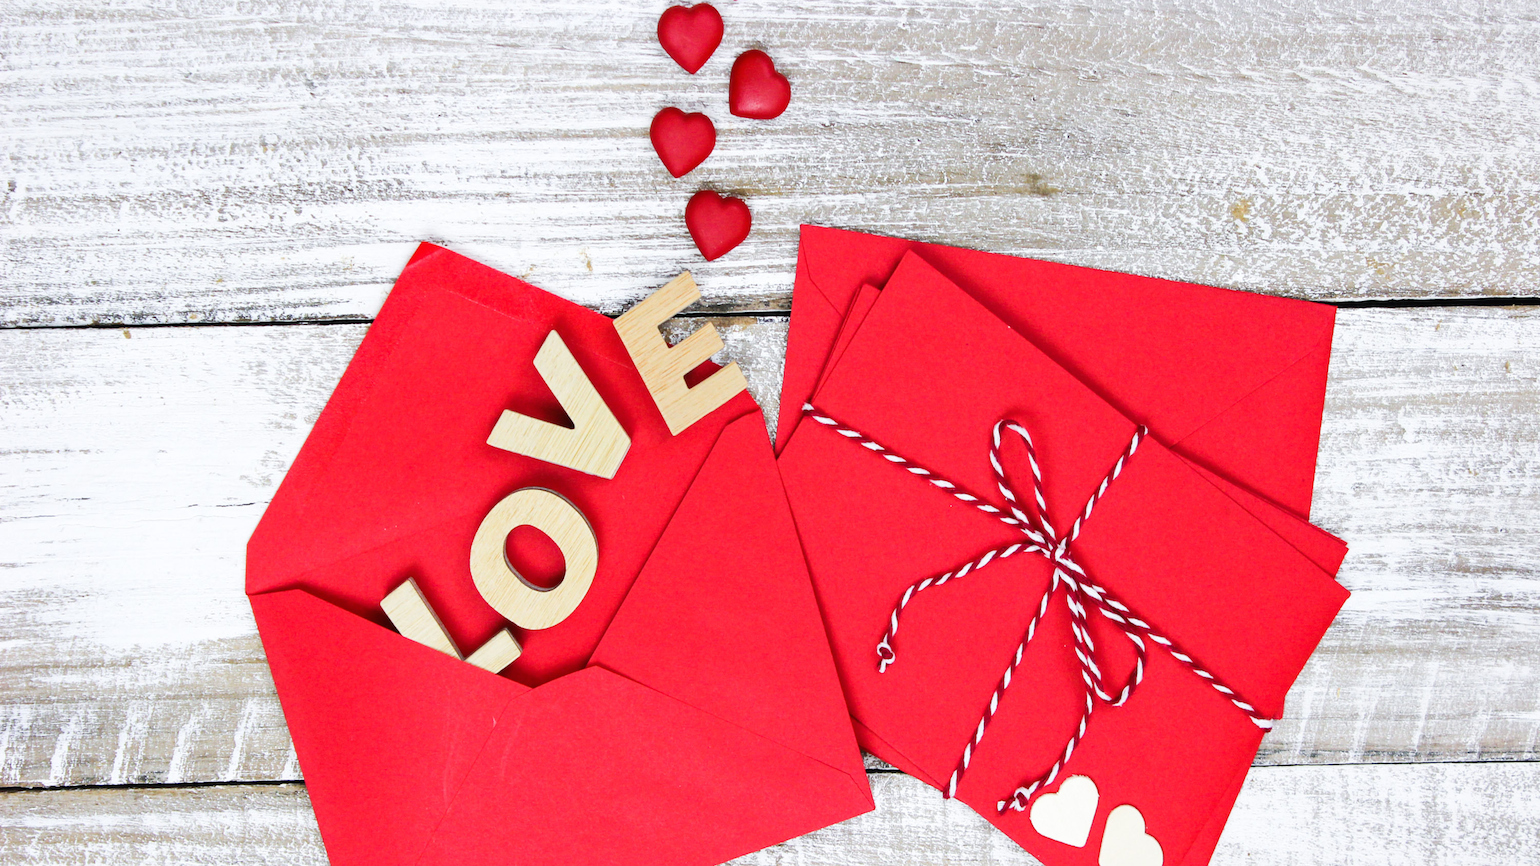 What love really means on Valentine's Day